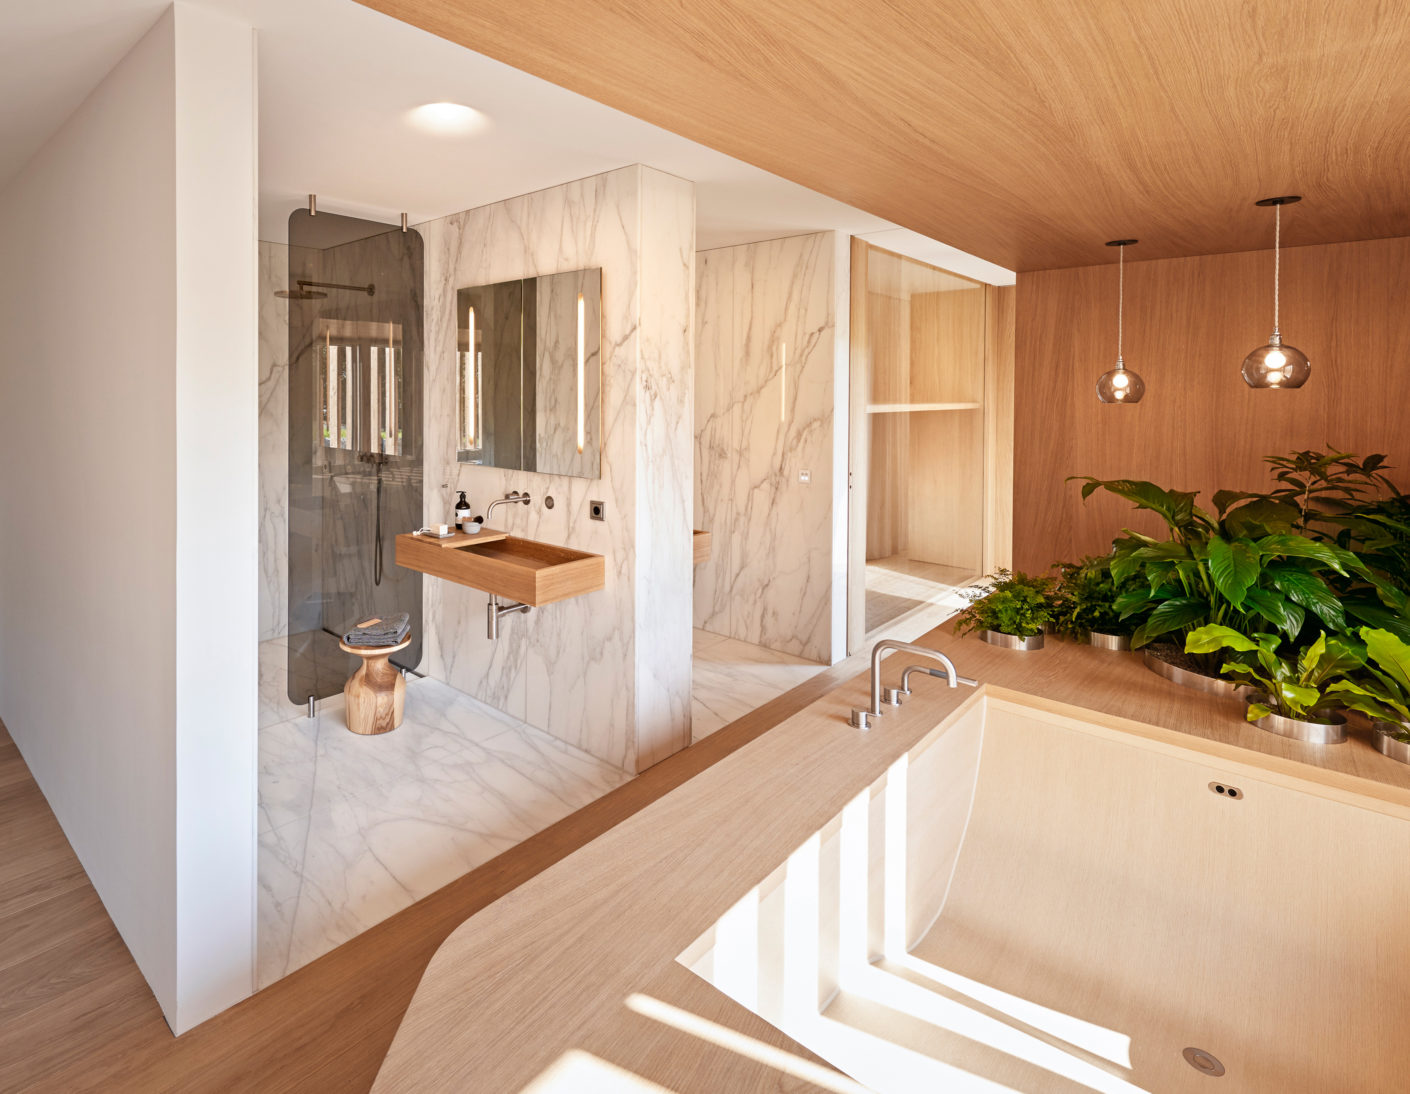 Reduced shapes and a lot of wood as a material provide an optical rest in the open bathroom concept.